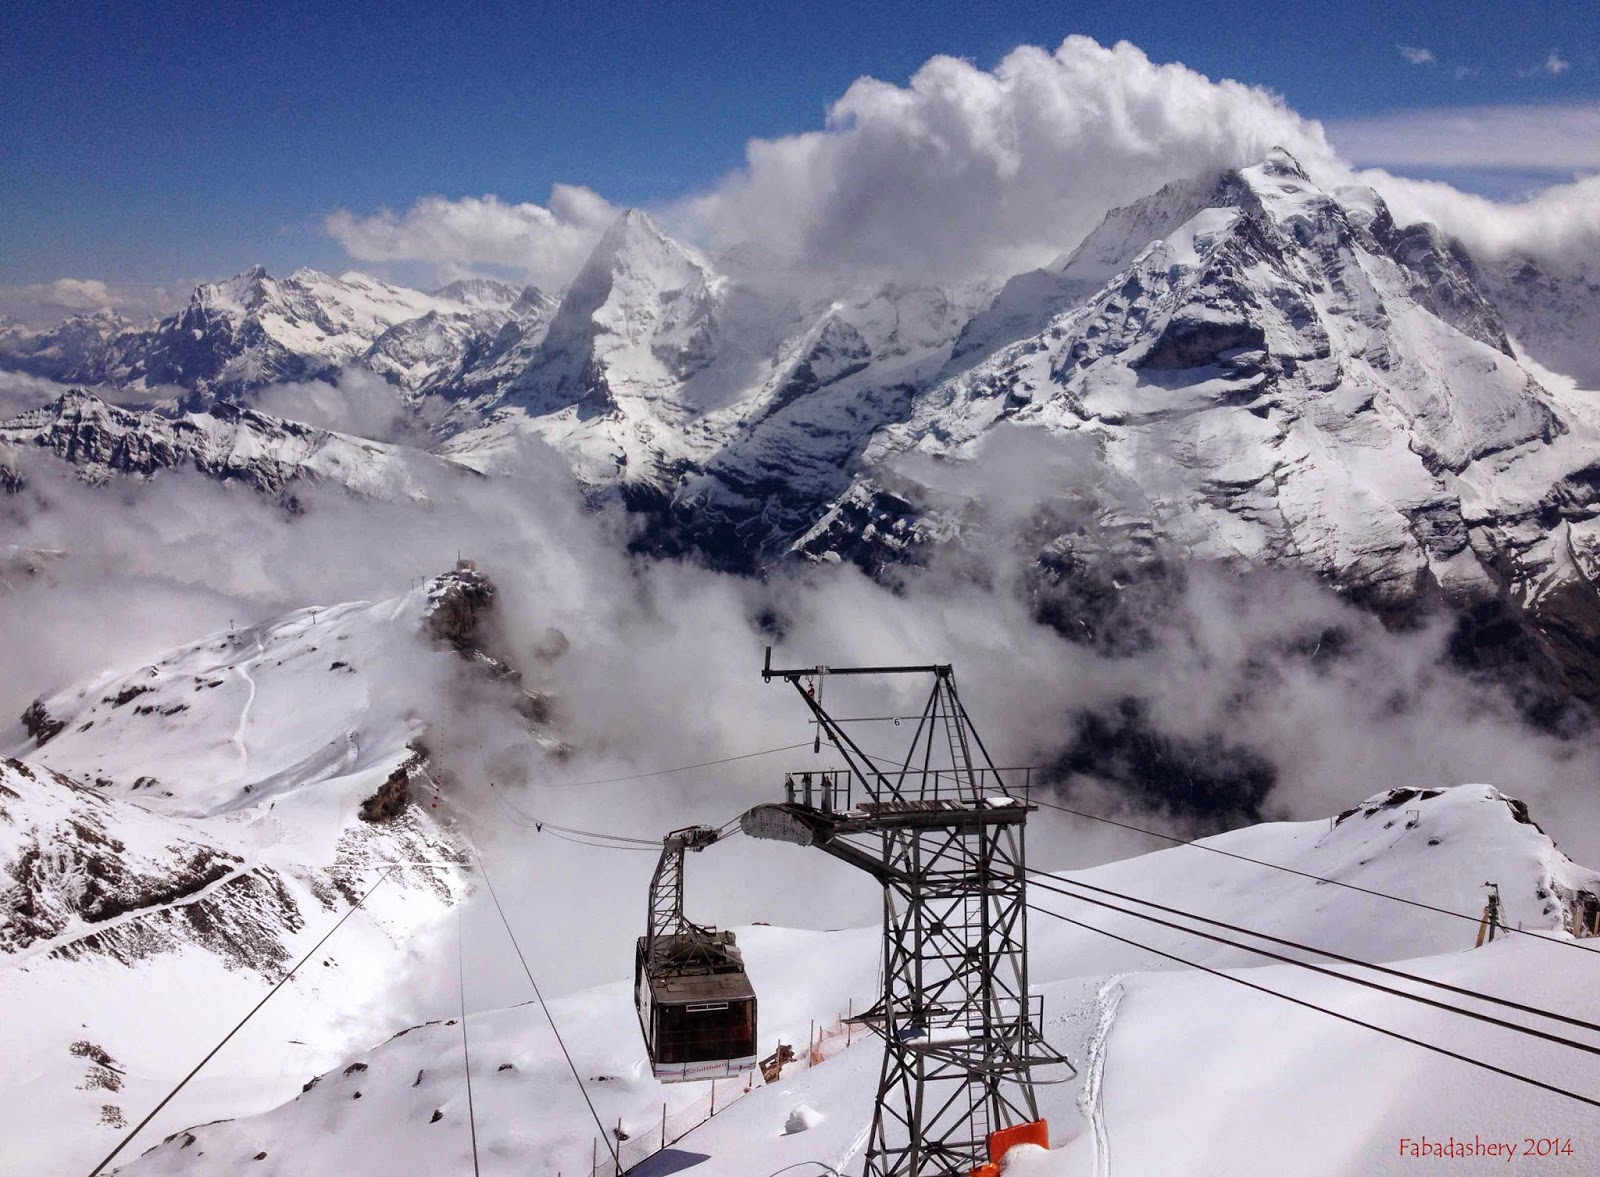 View of the cable car from Piz Gloria, Shilthorn, Switzerlabnd